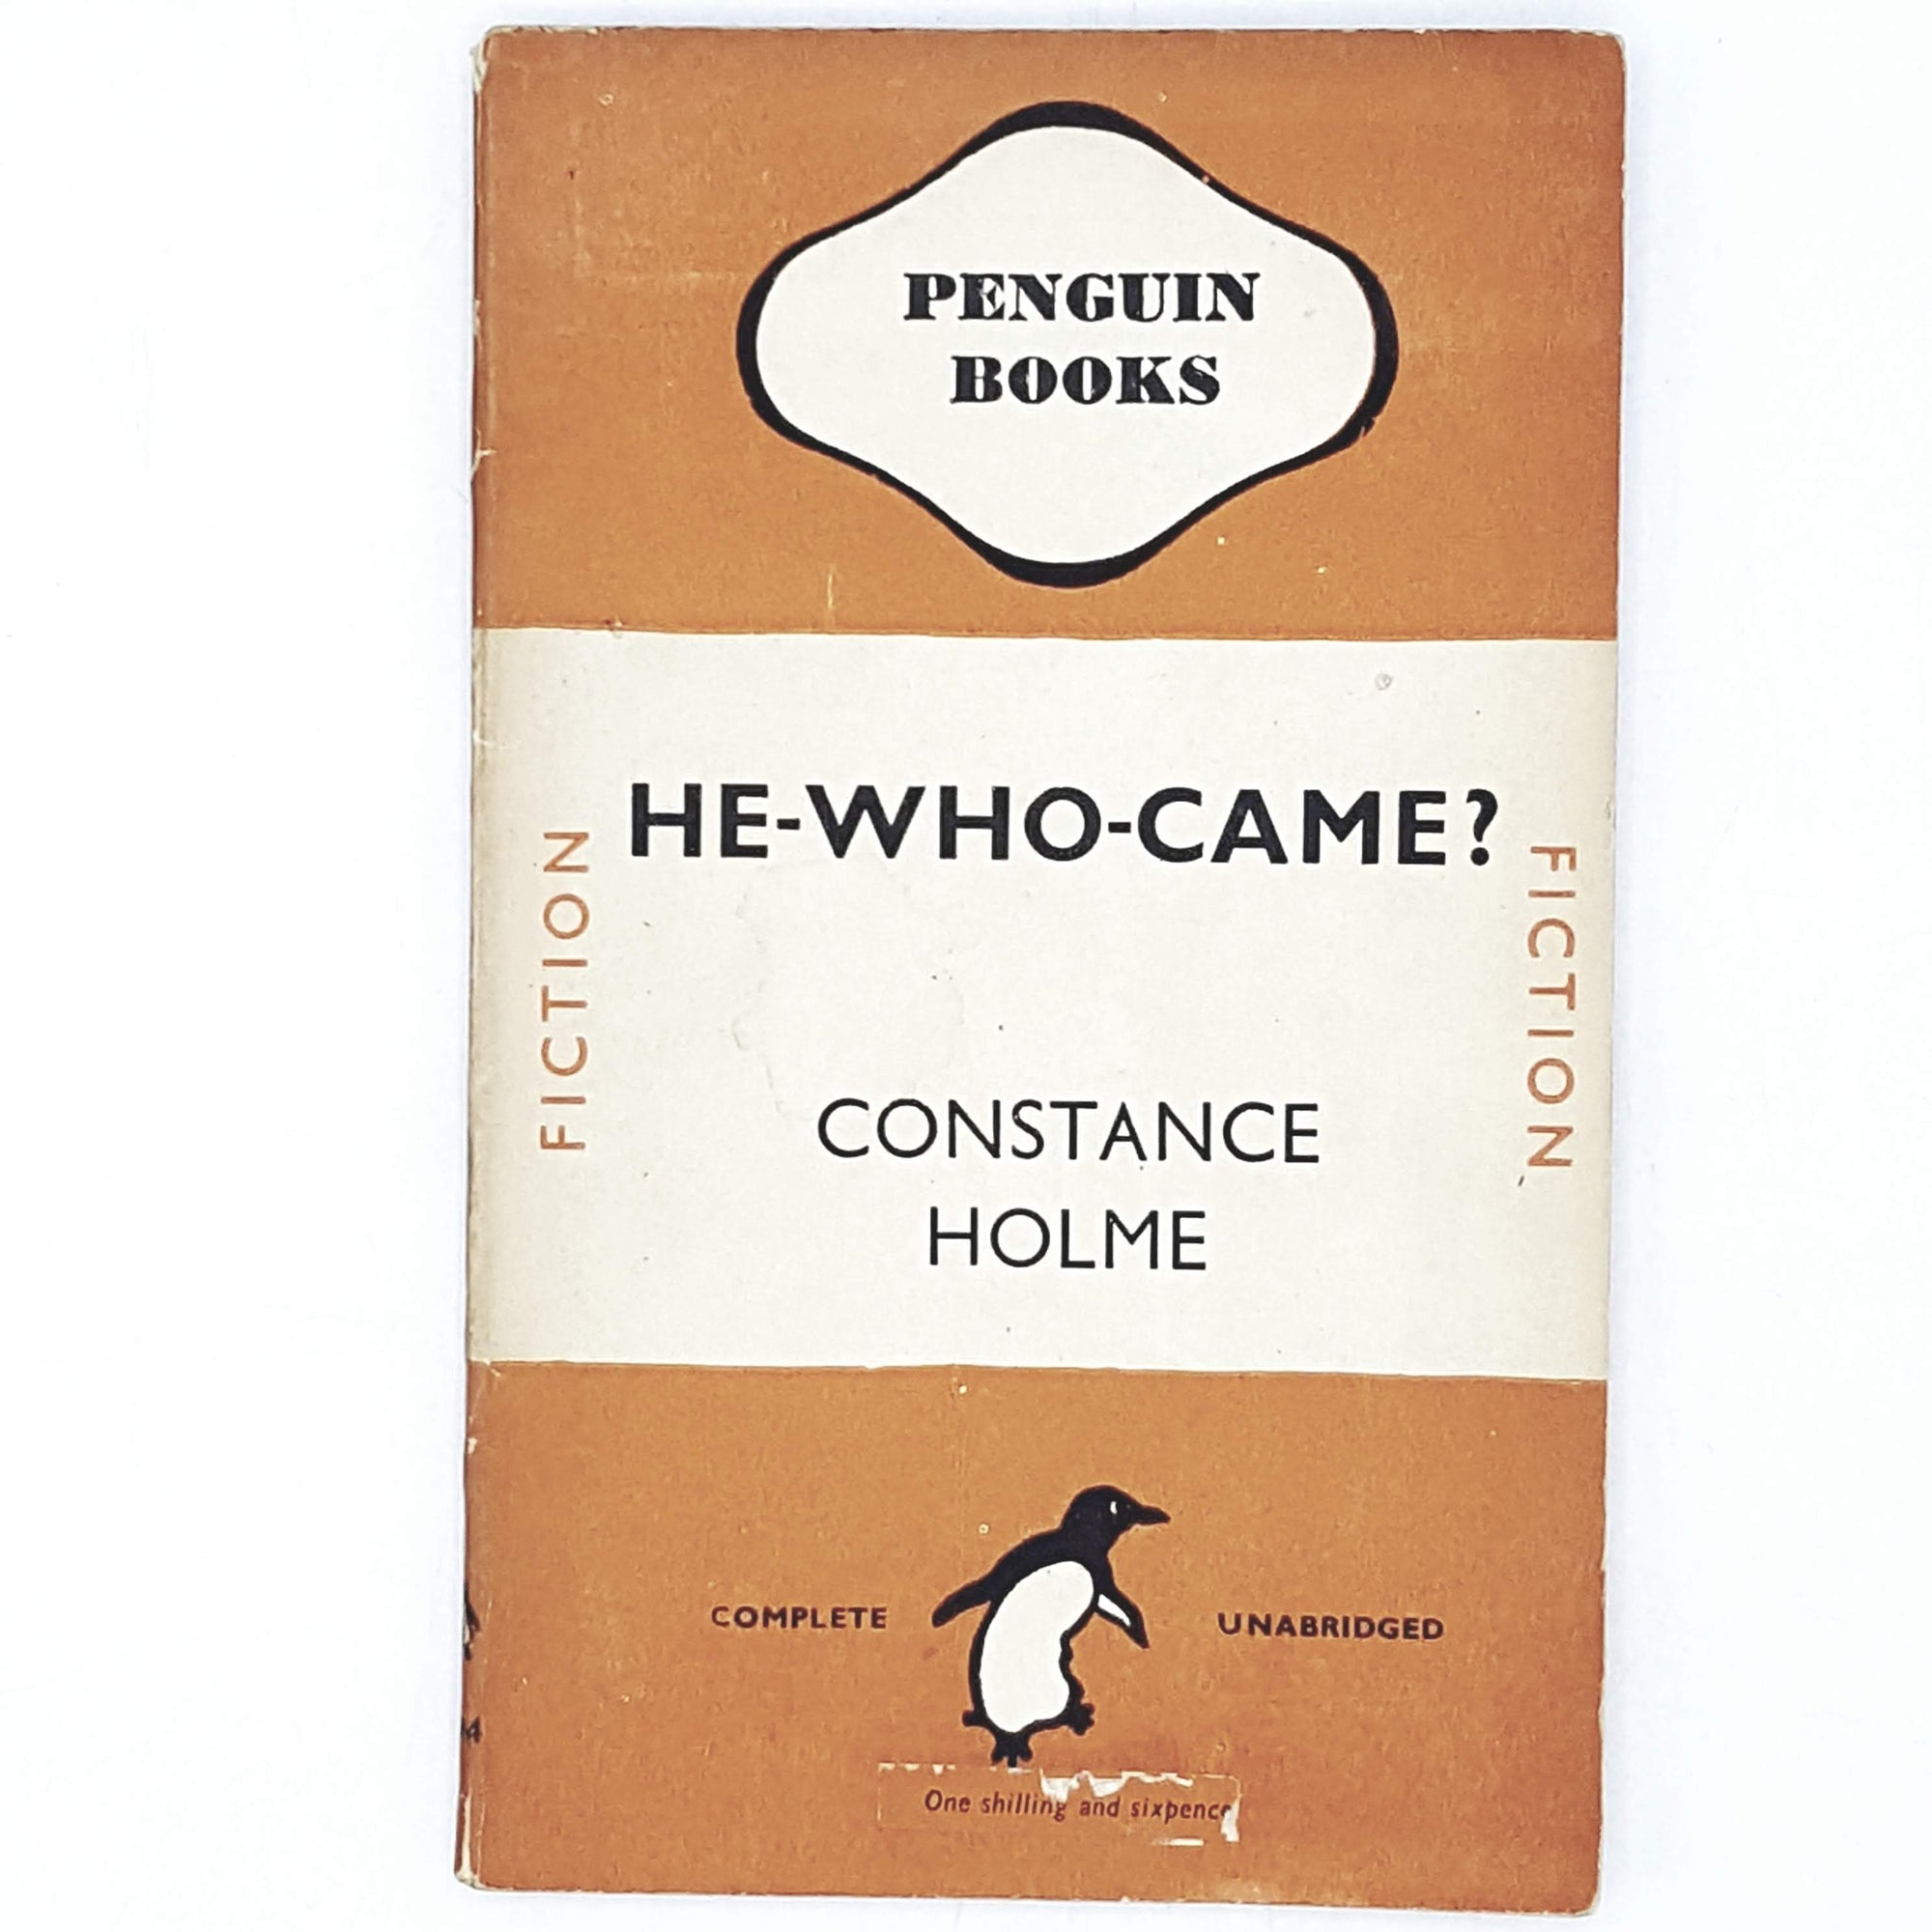 Vintage Penguin He-Who-Came? by Constance Holme 1945